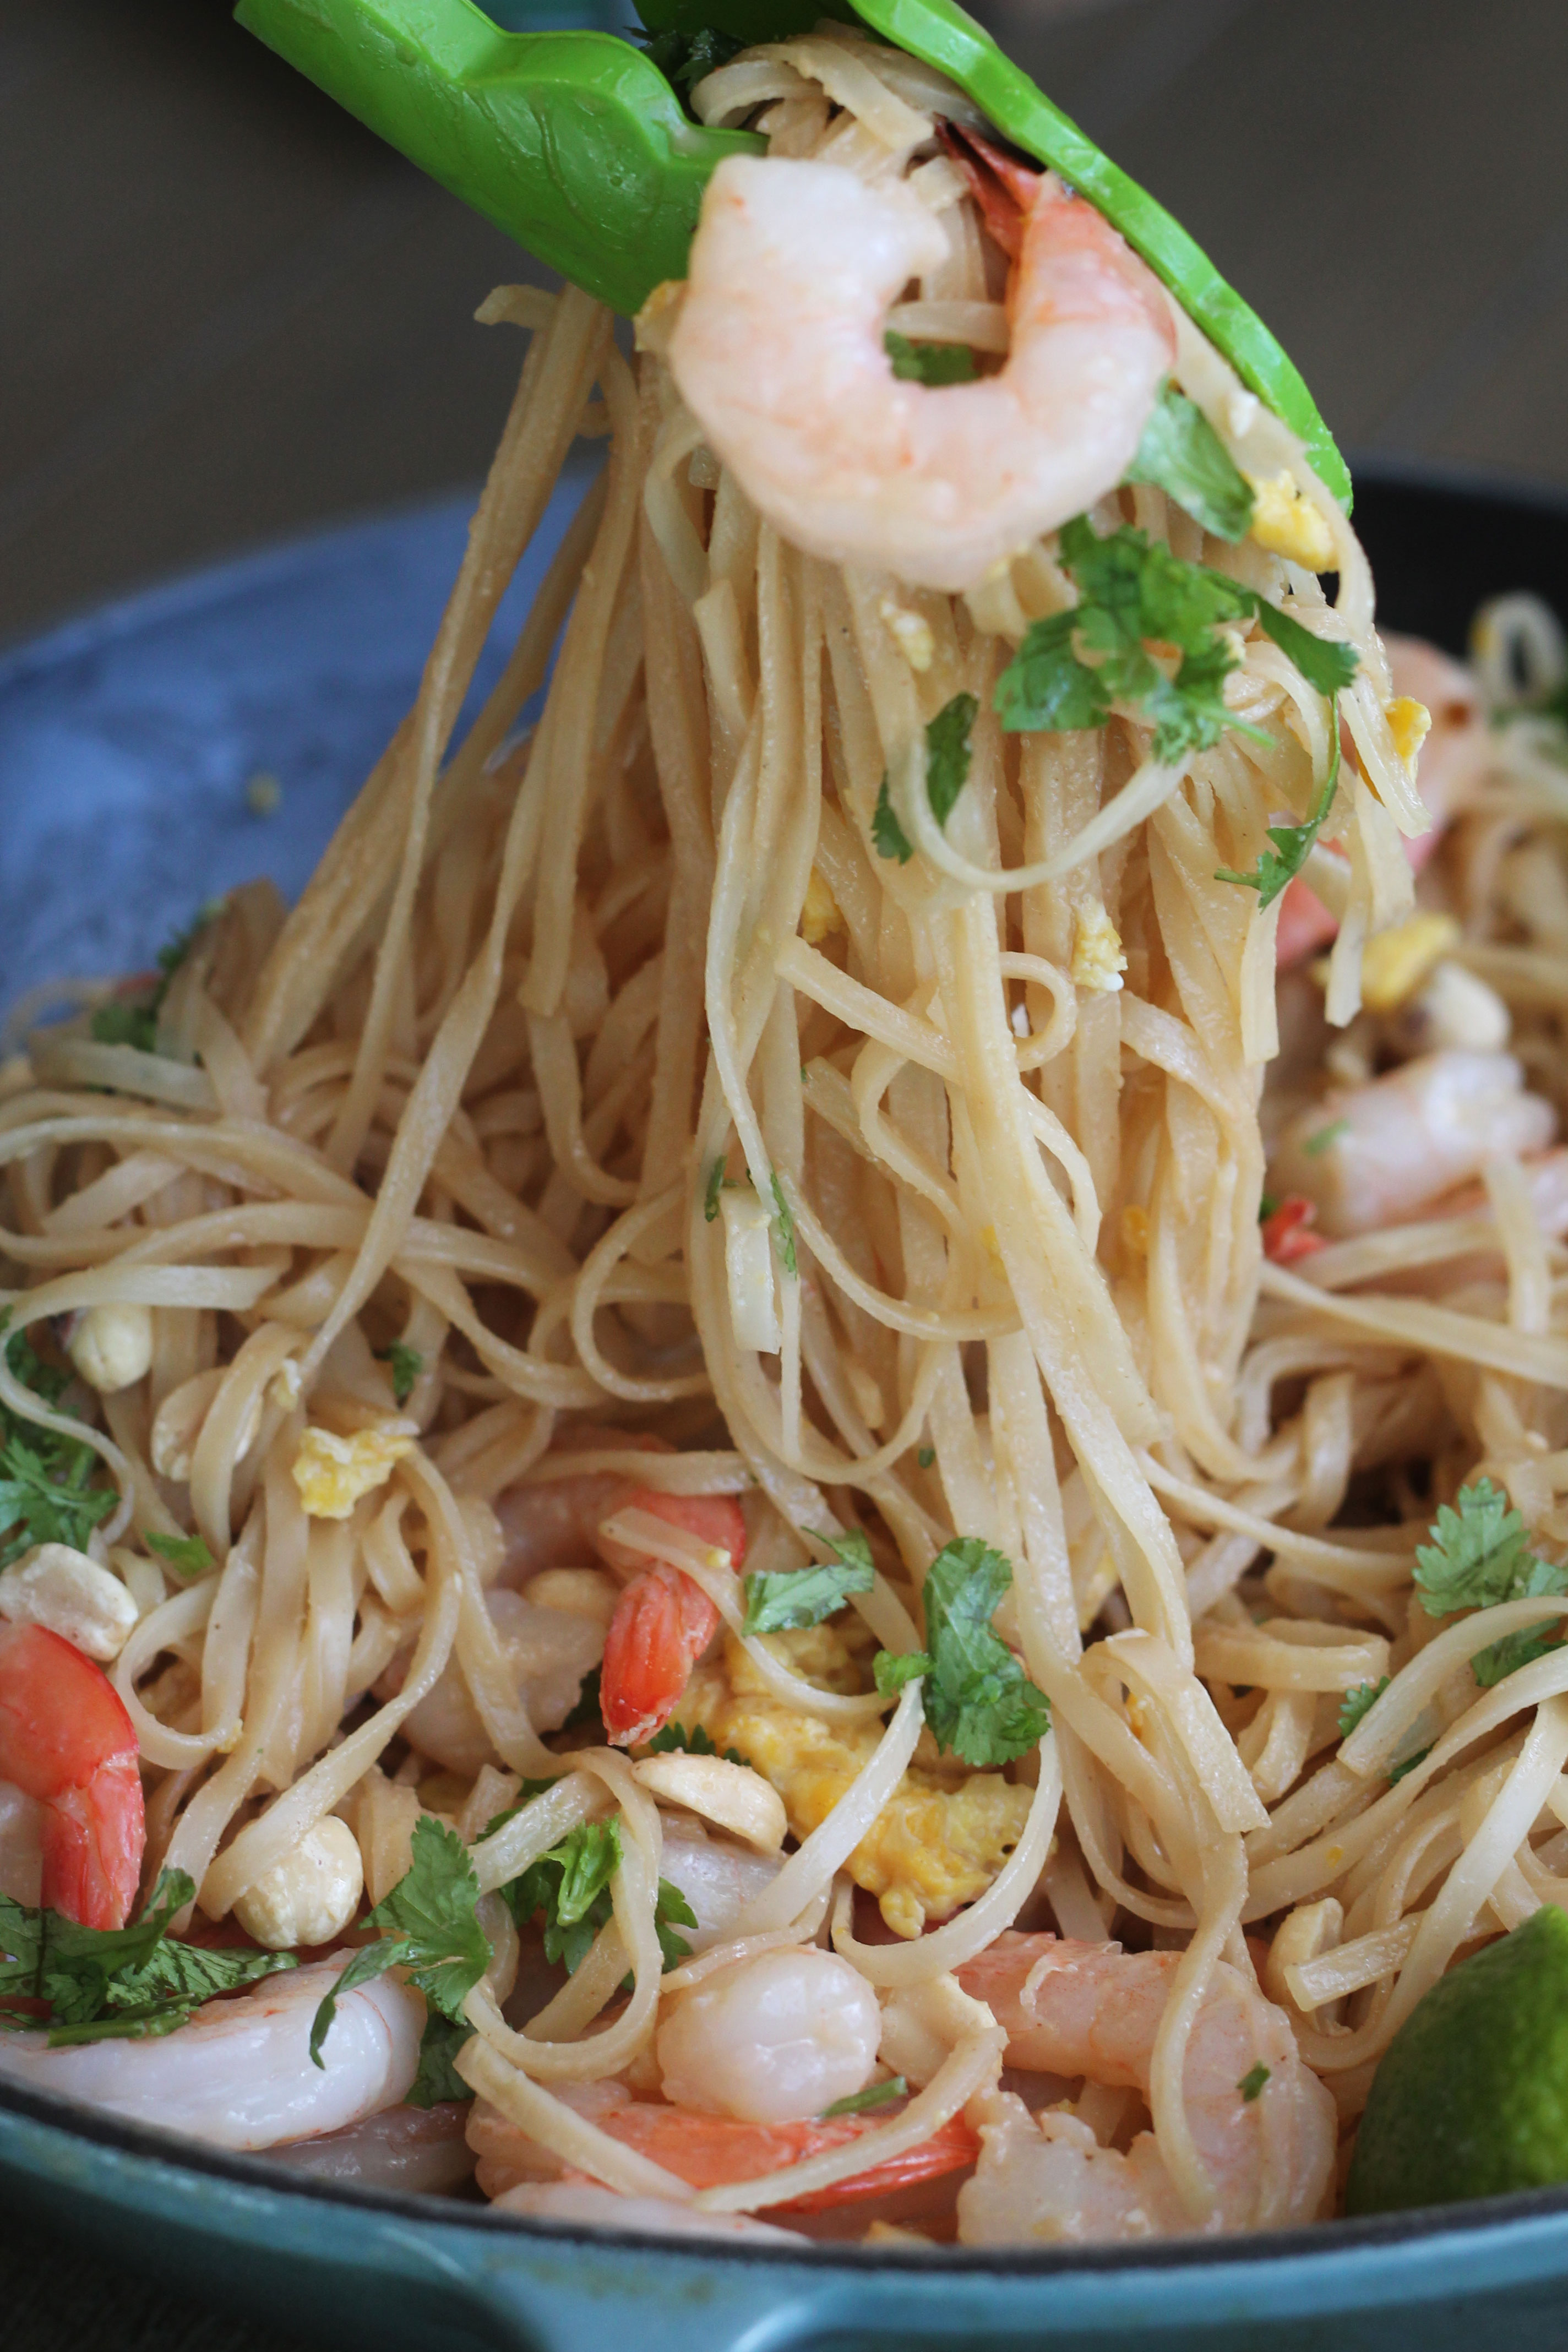 This restaurant style Shrimp Pad Thai can now be made in the comfort of your own home!